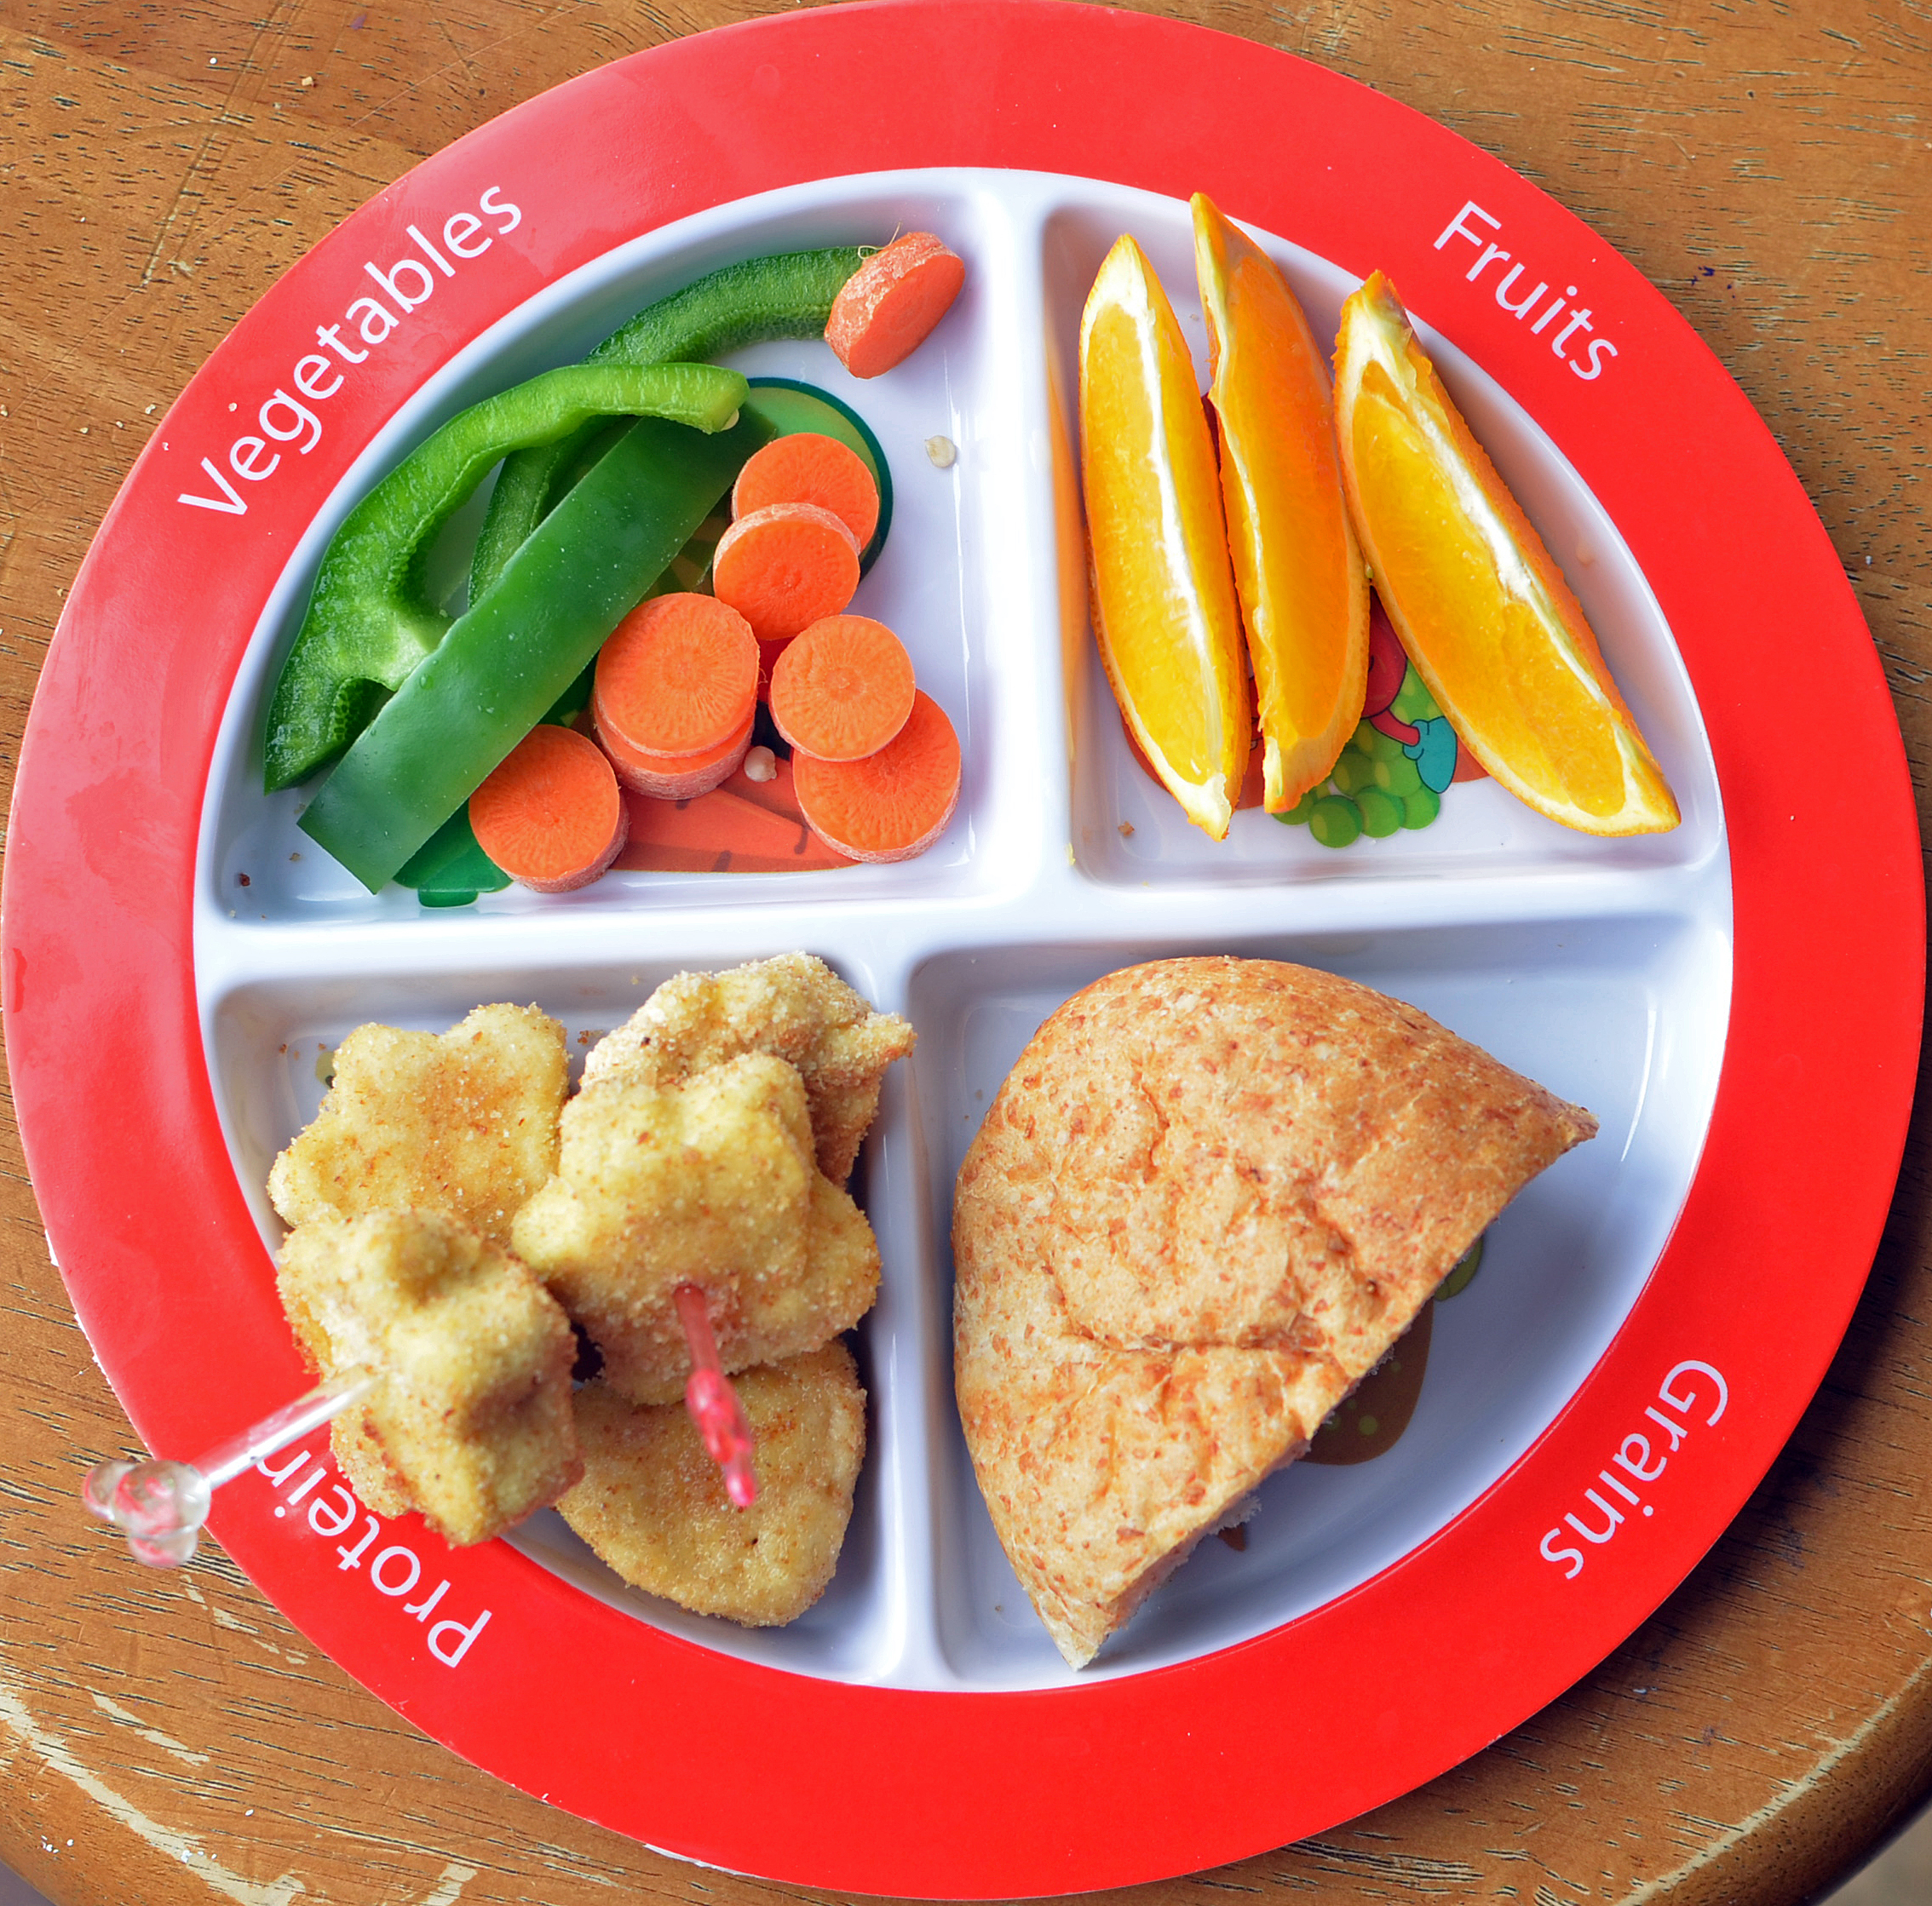 Guide to Toddler Portion Sizes. All kids are different and grow at different rates ... & Guide to Toddler Portion Sizes | Healthy Ideas for Kids